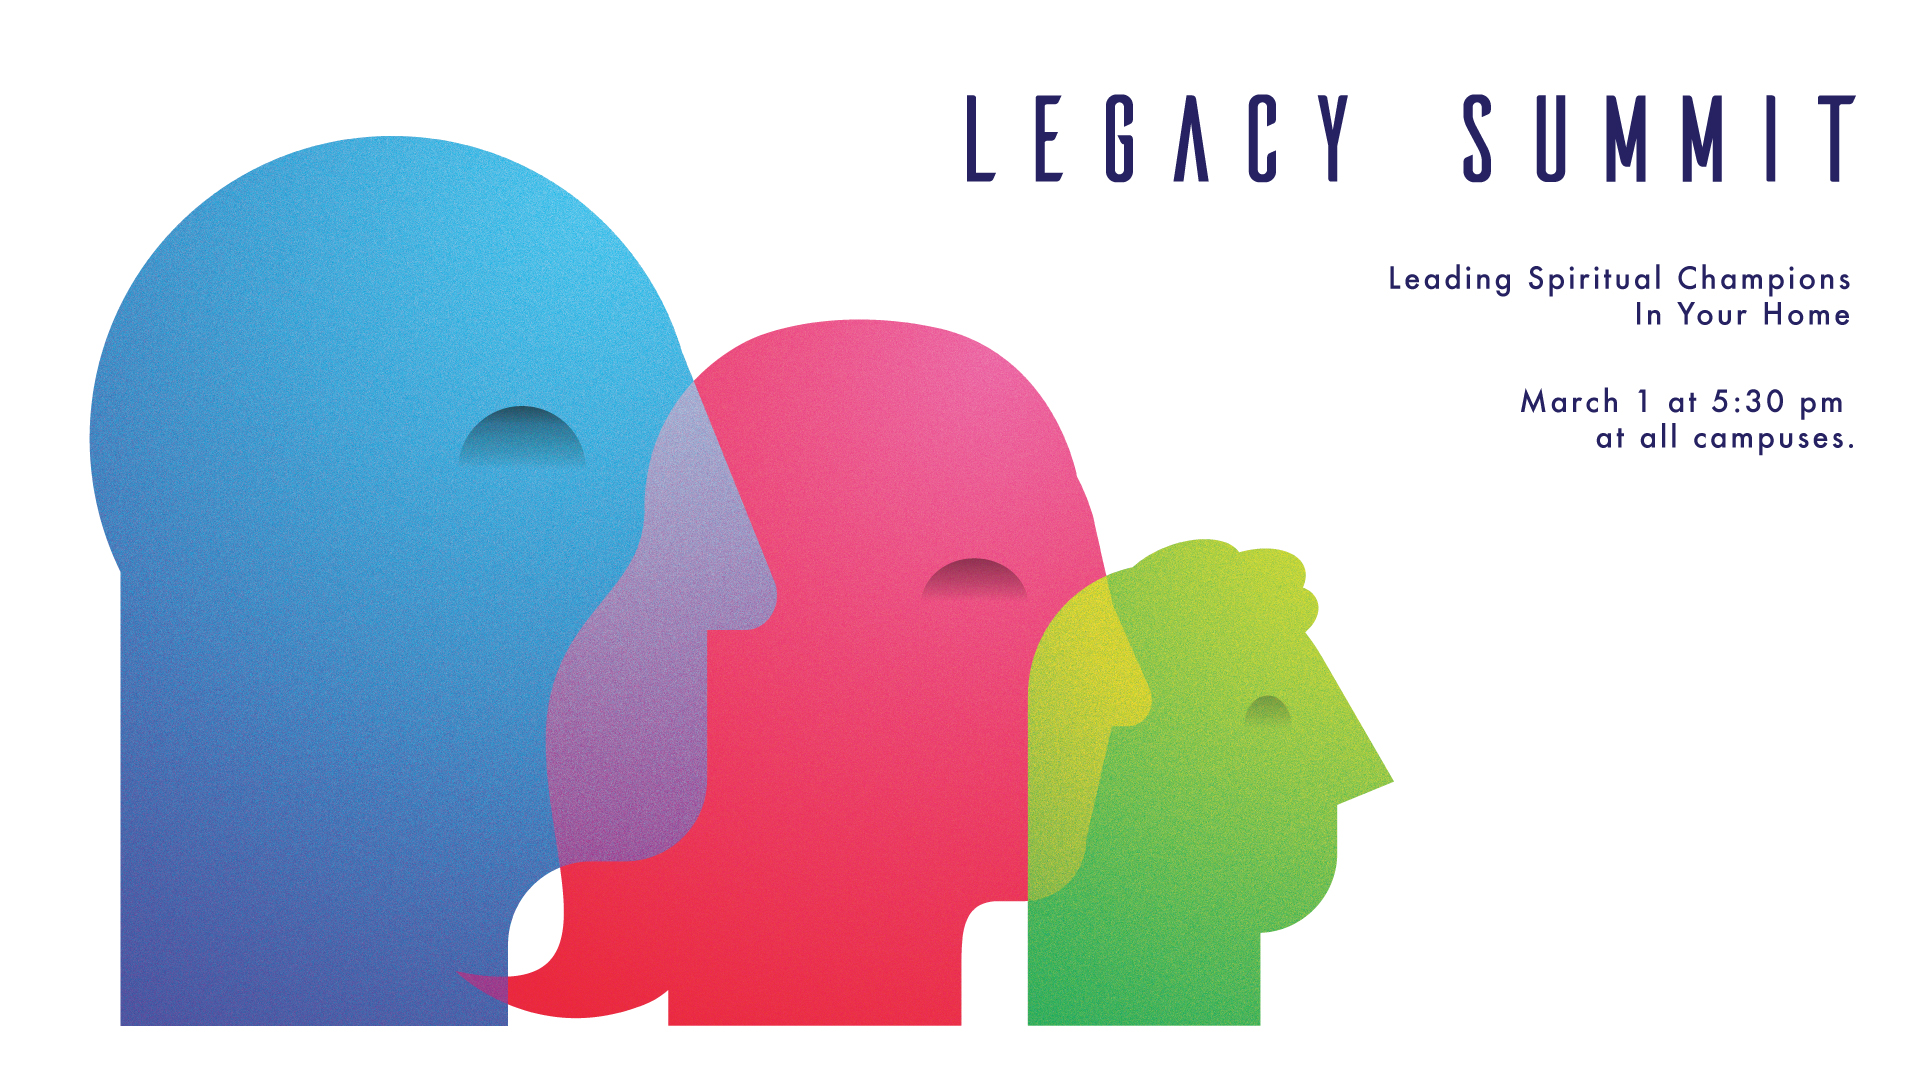 The Legacy Summit: Leading Spiritual Champions in Your Home